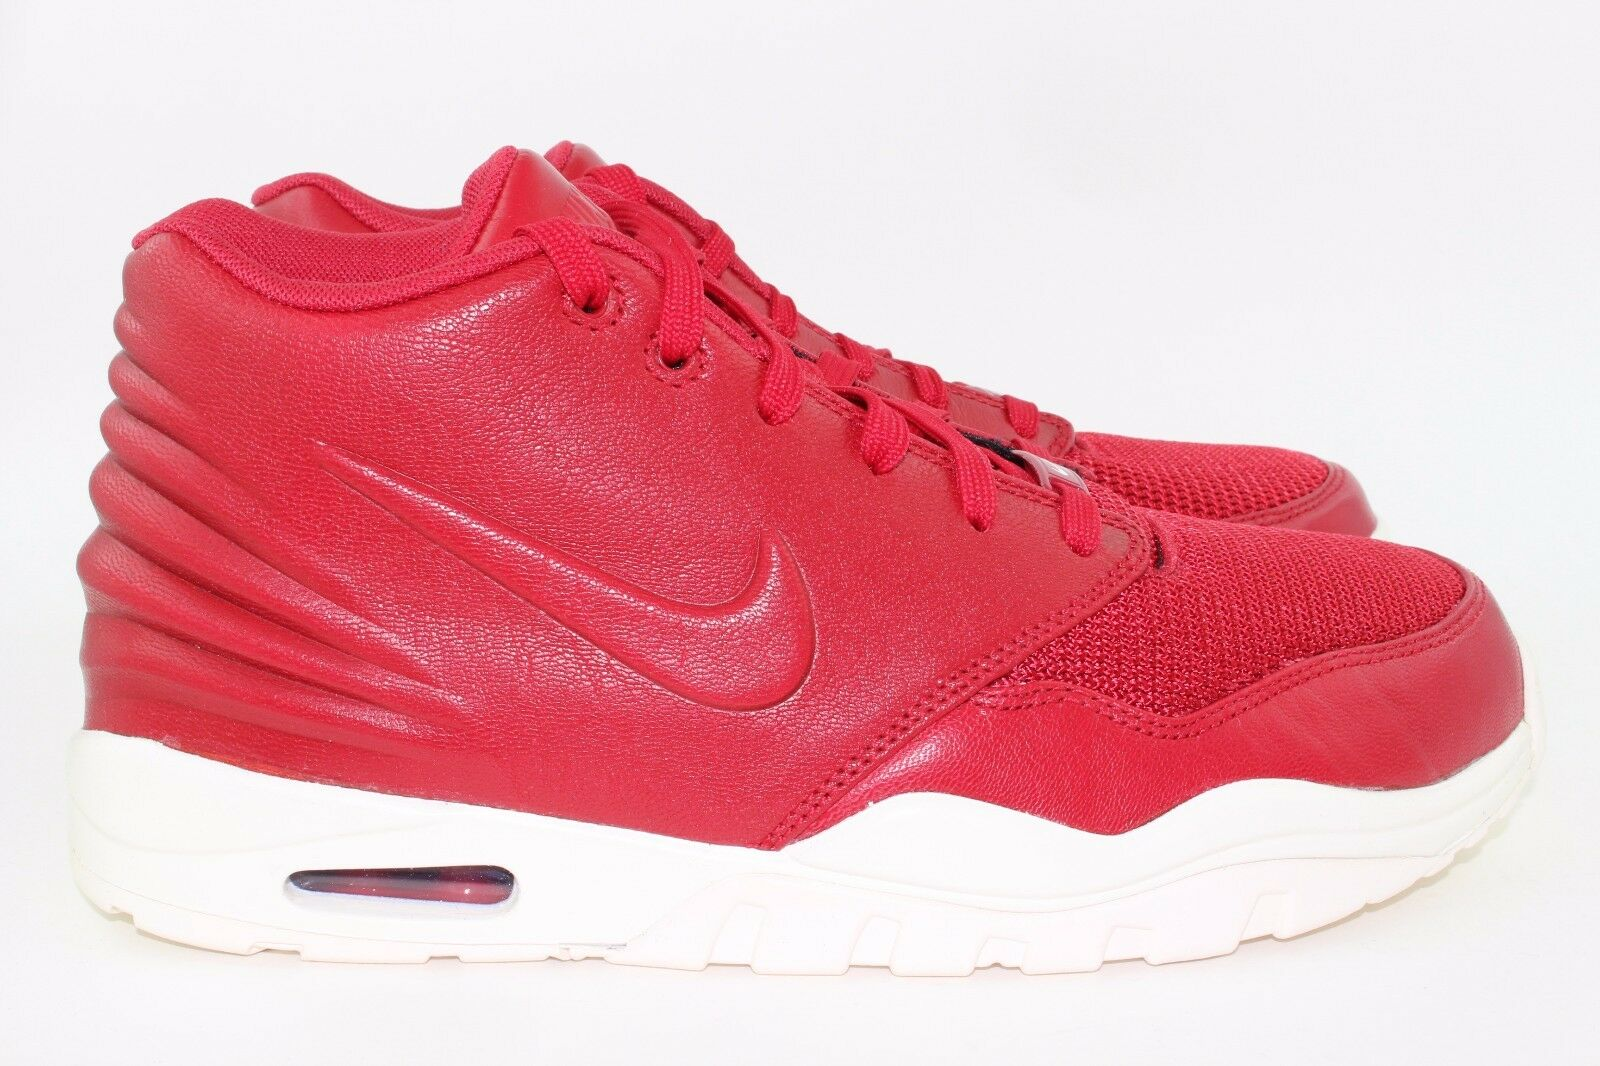 Nike Air Entertrainer Size 9.5 Men Varsity Red Comfort New Rare Legit Brilliant Comfort Red d9ca8a